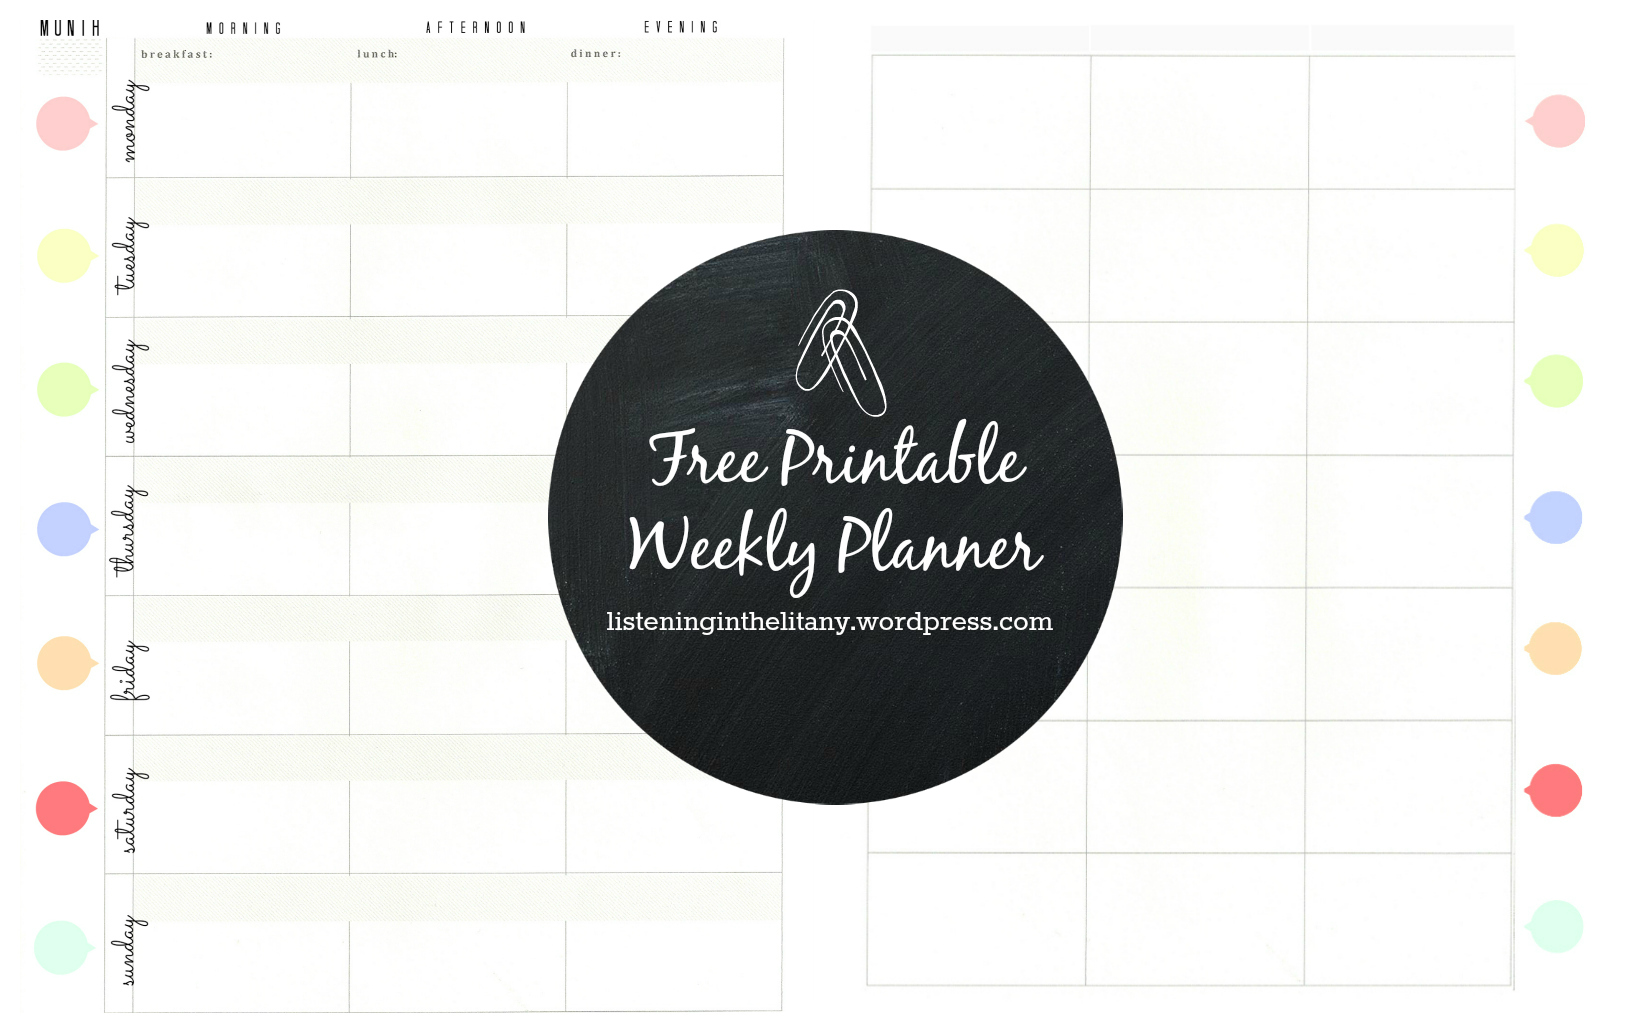 Creating A Family Routine A Free Printable Weekly Planner